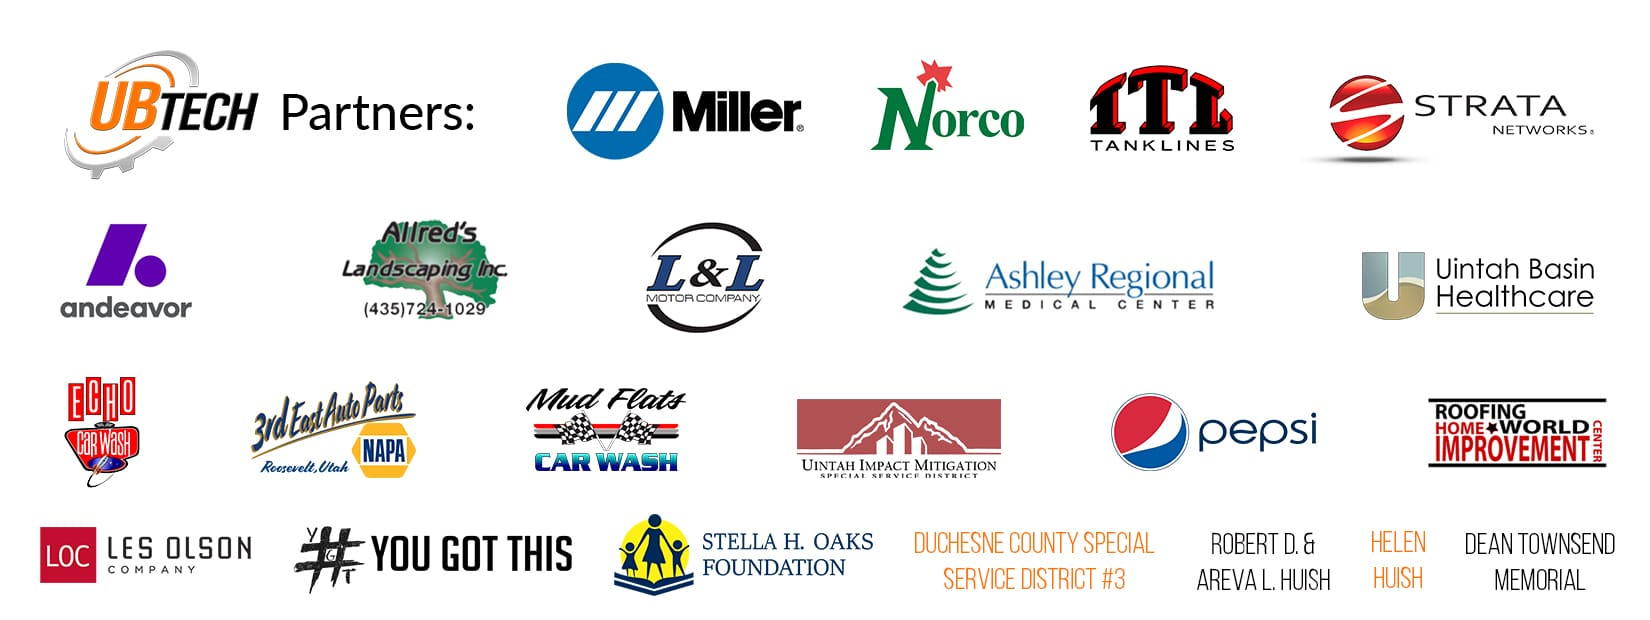 UB Tech Partners: Miller, Norco, ITL Tanklines, Strata Andeavor, Allreds Landscaping, L&L Motor, Ashley Regional Medical Center, Uintah Basin Healthcare, Echo Carwash, 3rd East Auto Parts, Mud Flats Carwash, Uintah Impact Mitigation, Pepsi Co, Roofing World, Les Olson, #YouGotThis, Stella H Oaks Foundation, Duchense Country Special District #3, Robert D. and Areva L Huish, Helen Huish, Dean Townsend Memorial